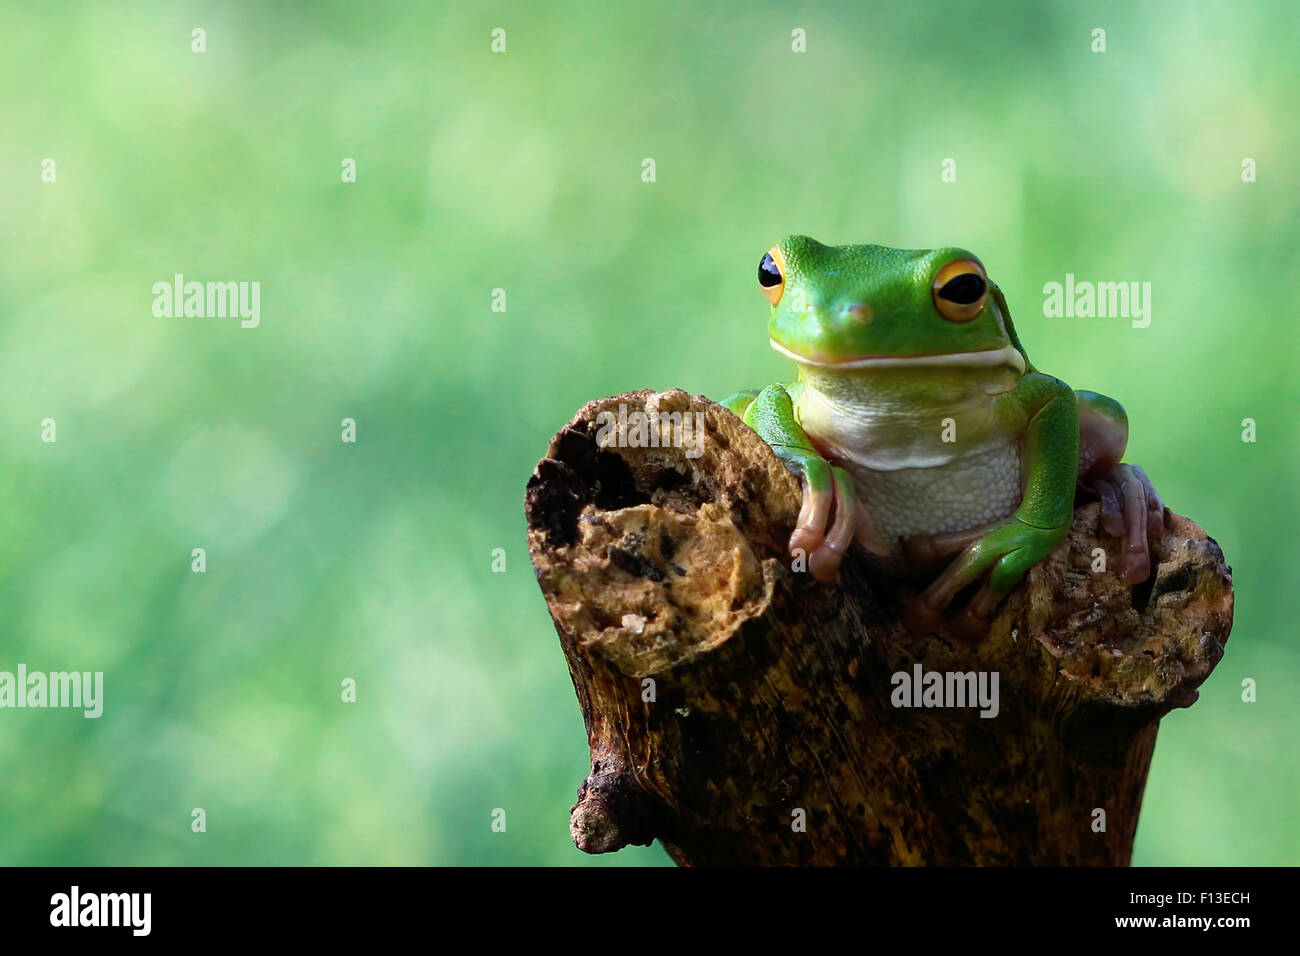 Frog sitting on a branch - Stock Image